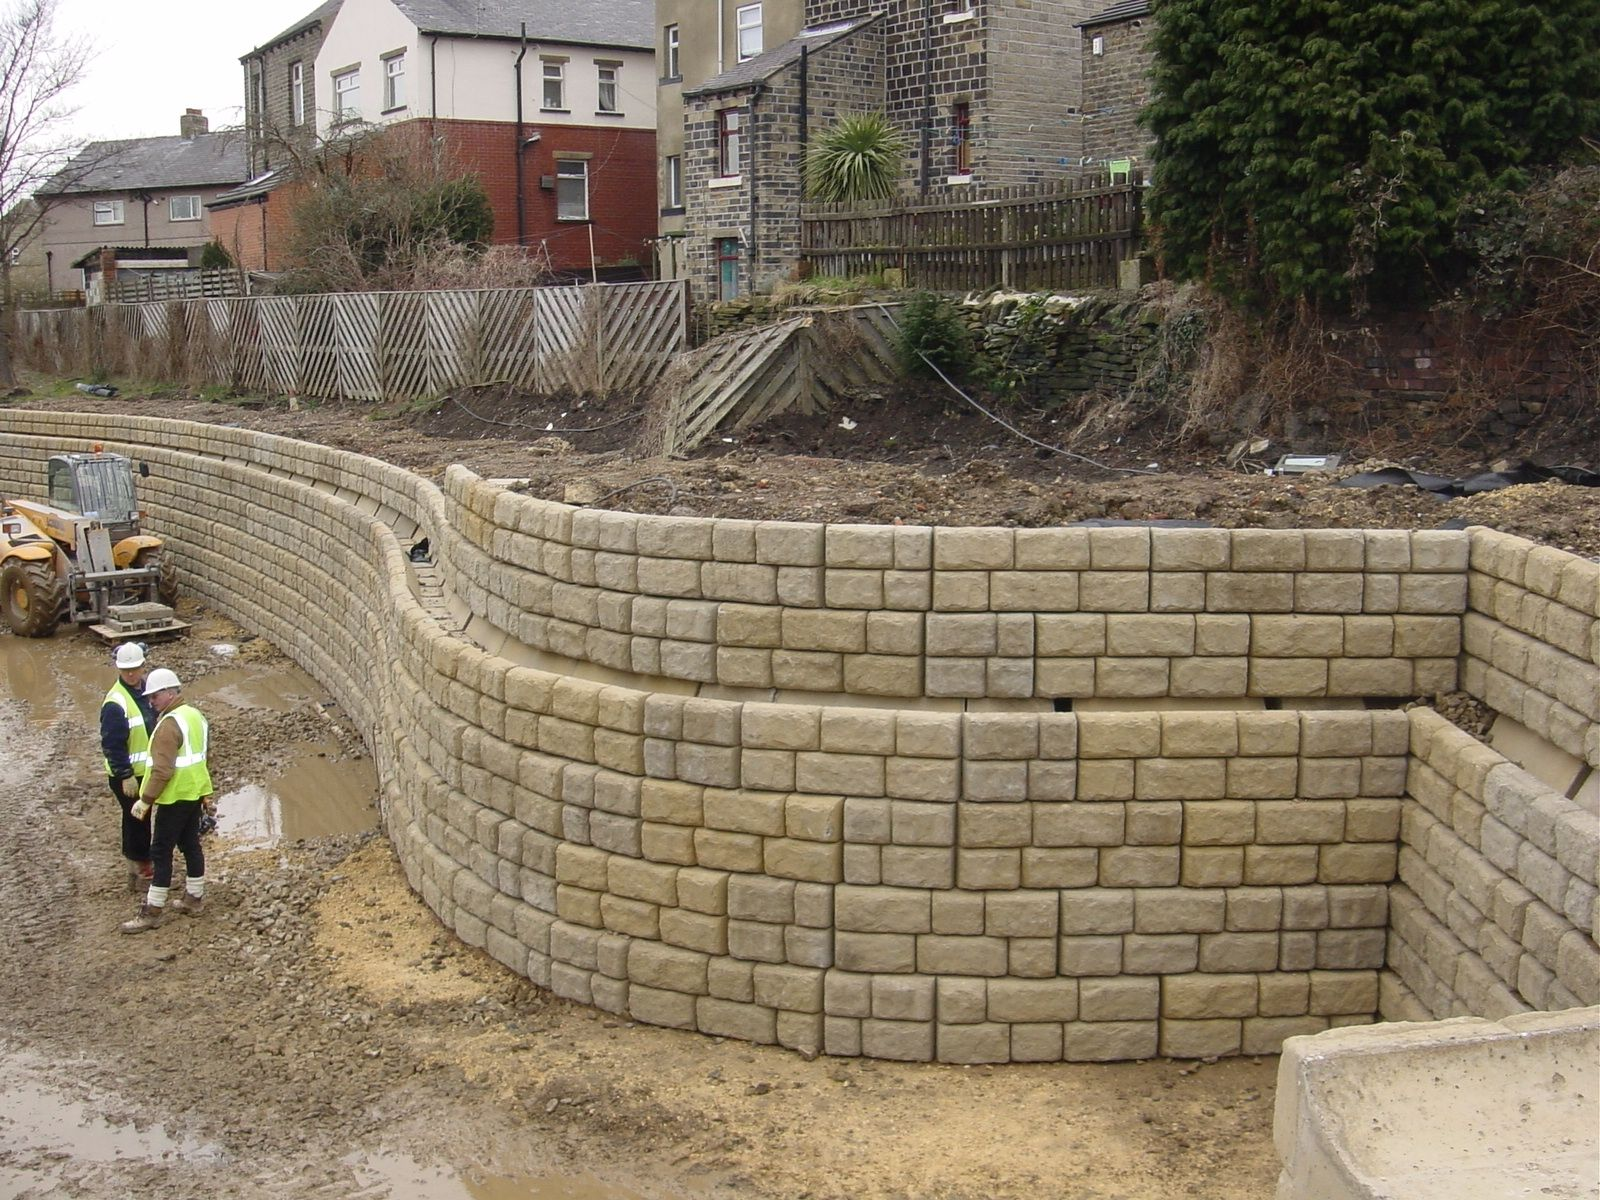 Each One Tonne Cpm Concrete Block Interconnects With The Next And Is Dry Laid Resulting In Fast Installation Times Concrete Blocks Retaining Wall Wall Systems